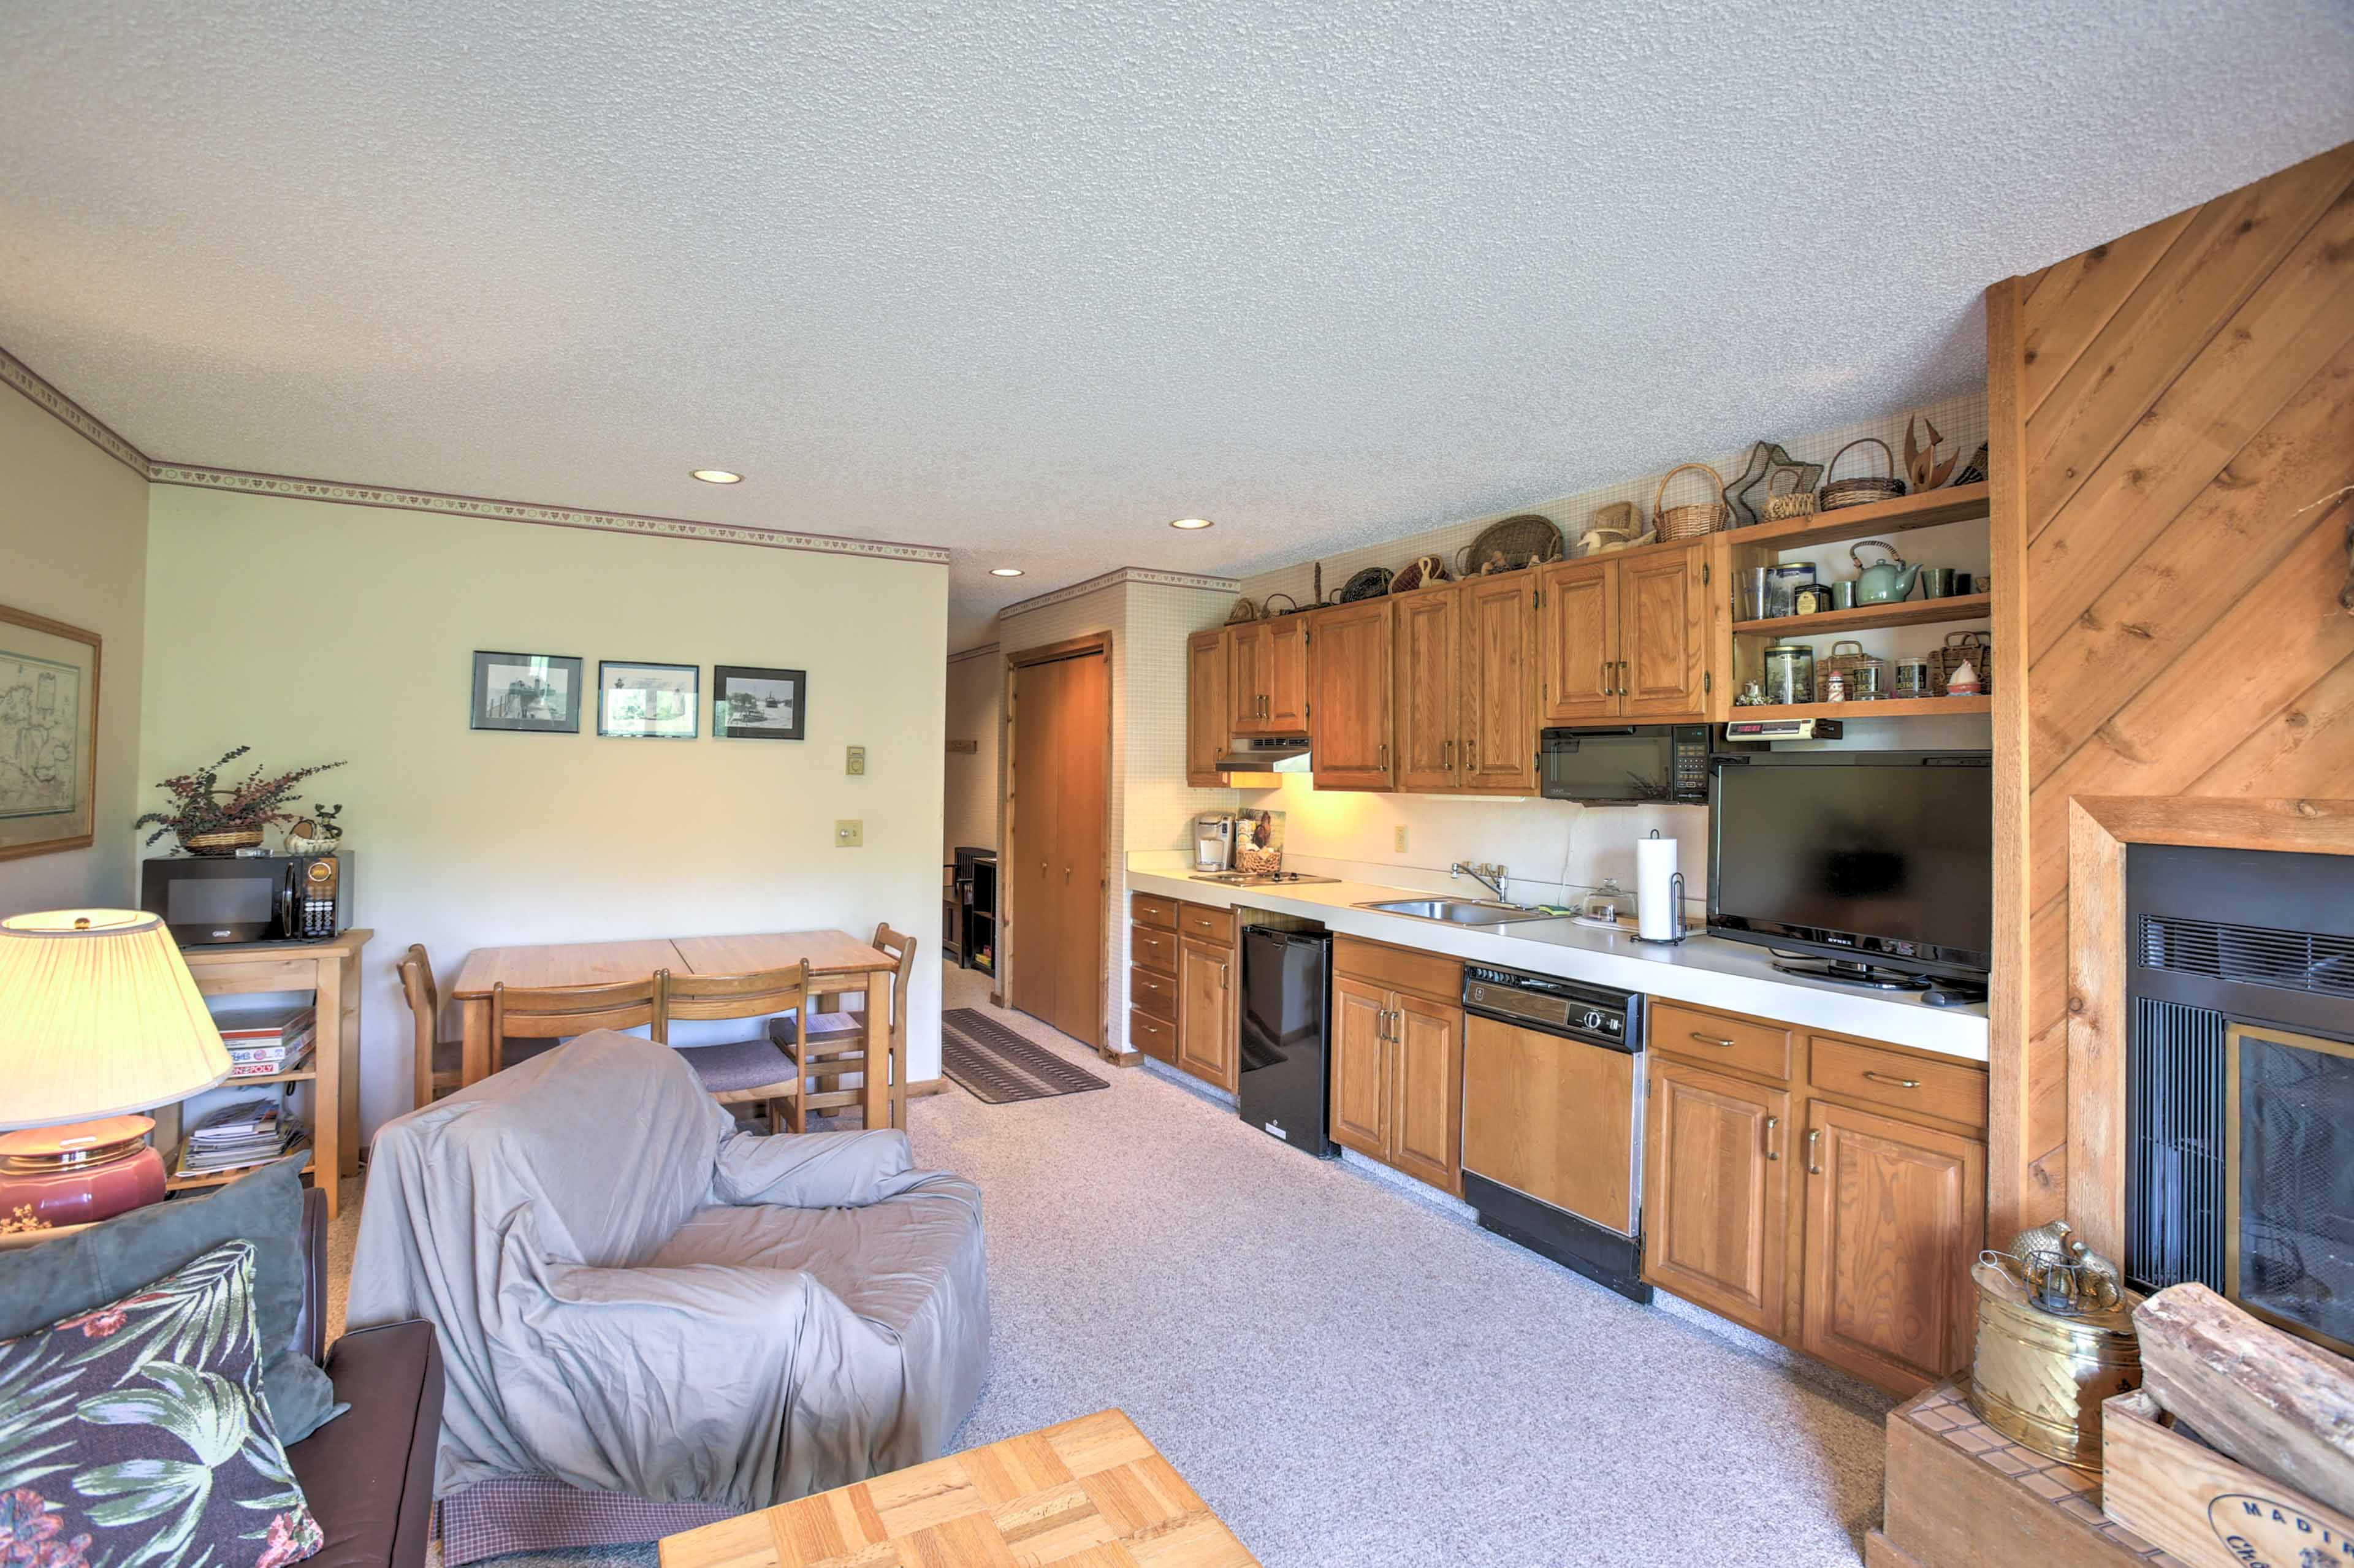 This cozy condo provides a great getaway for up to 6 guests.